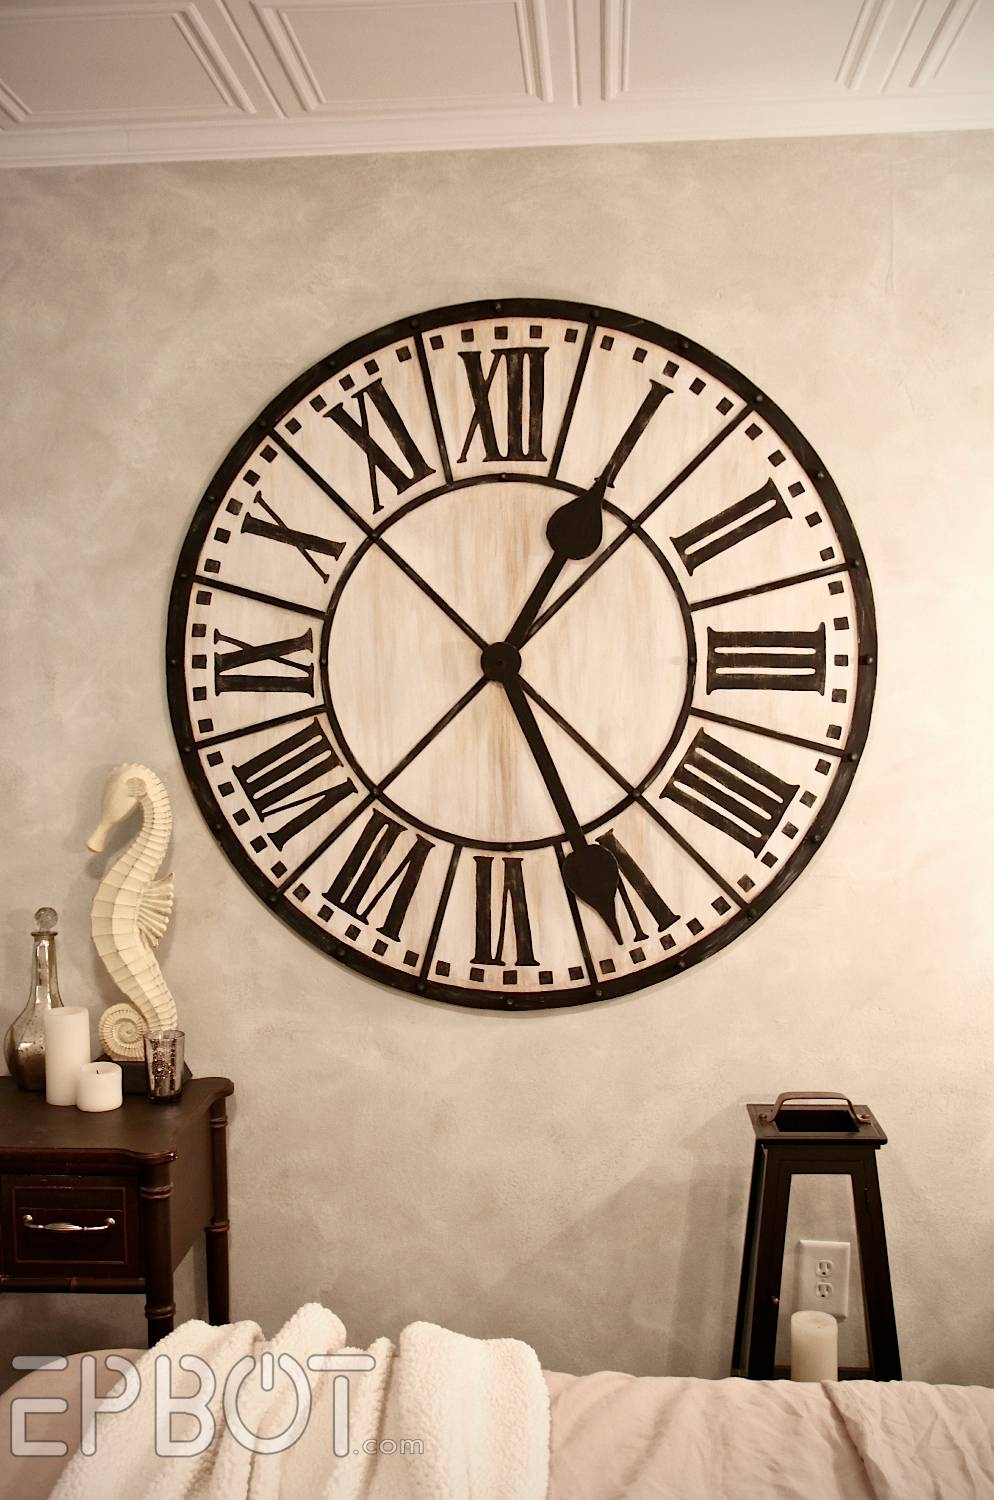 Electric Wall Clock Gear Wall Clock Big White Wall Clock Wall For Current Large Metal Wall Art Clocks (View 5 of 20)